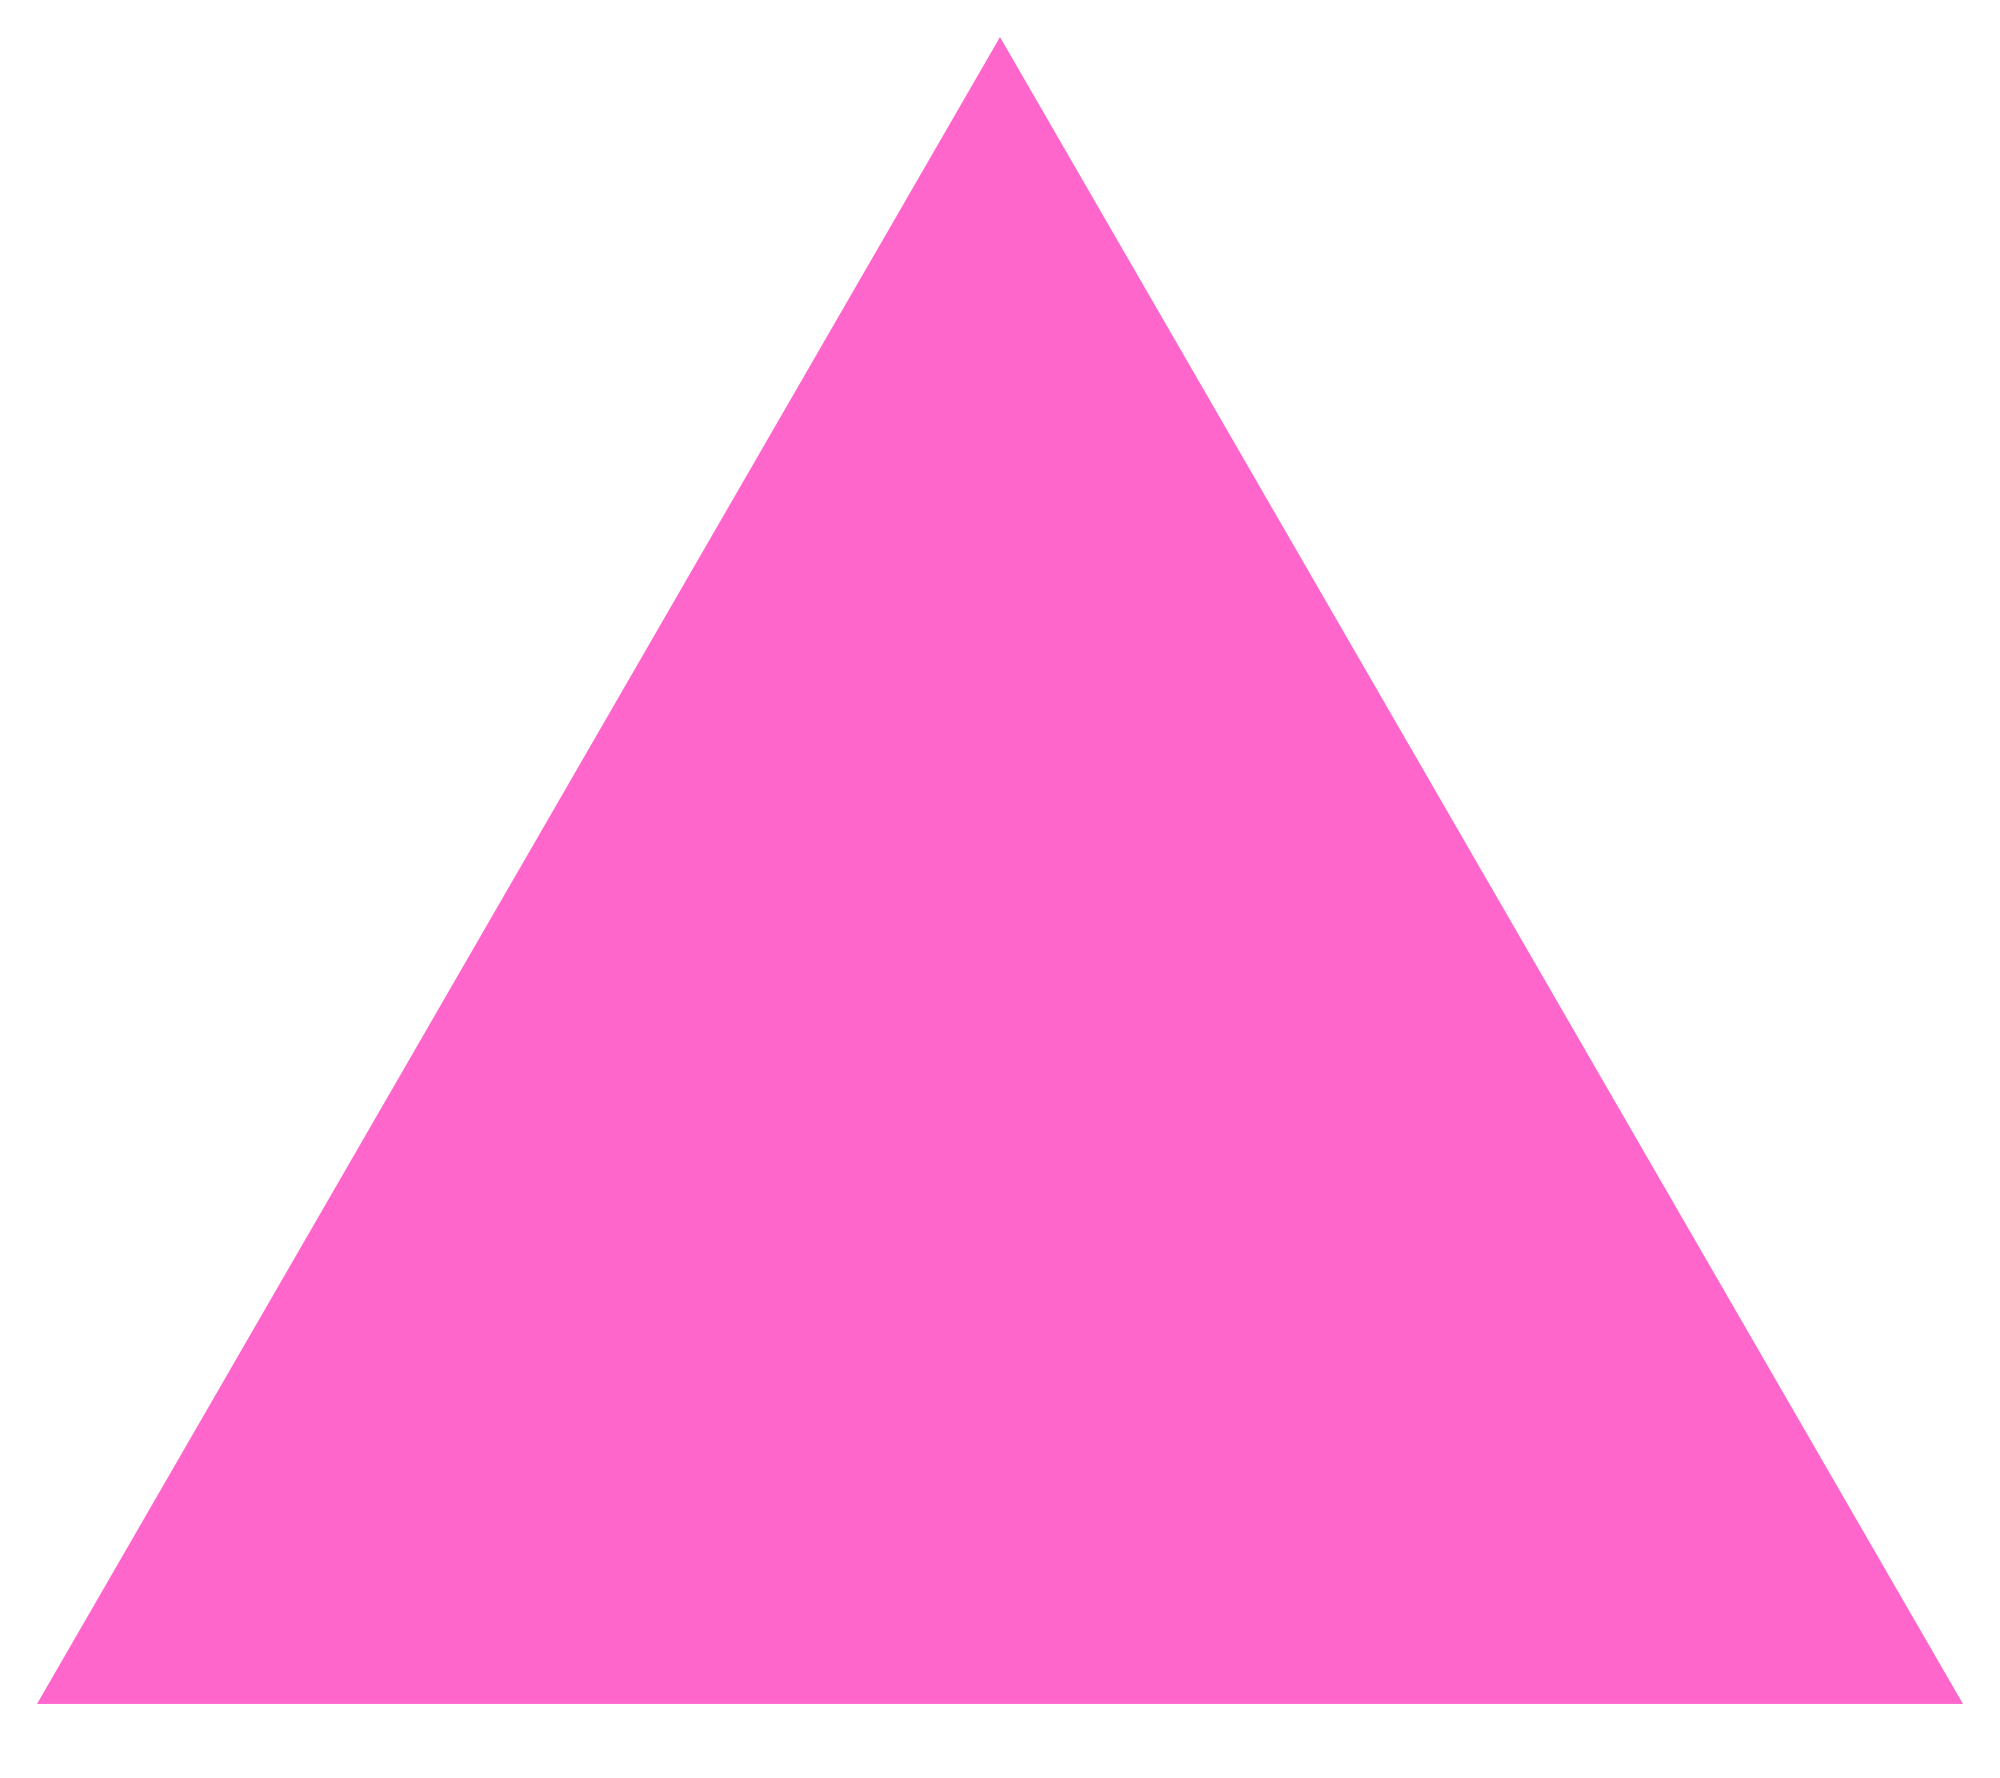 Triangular clipart different shape. Shapes lessons tes teach